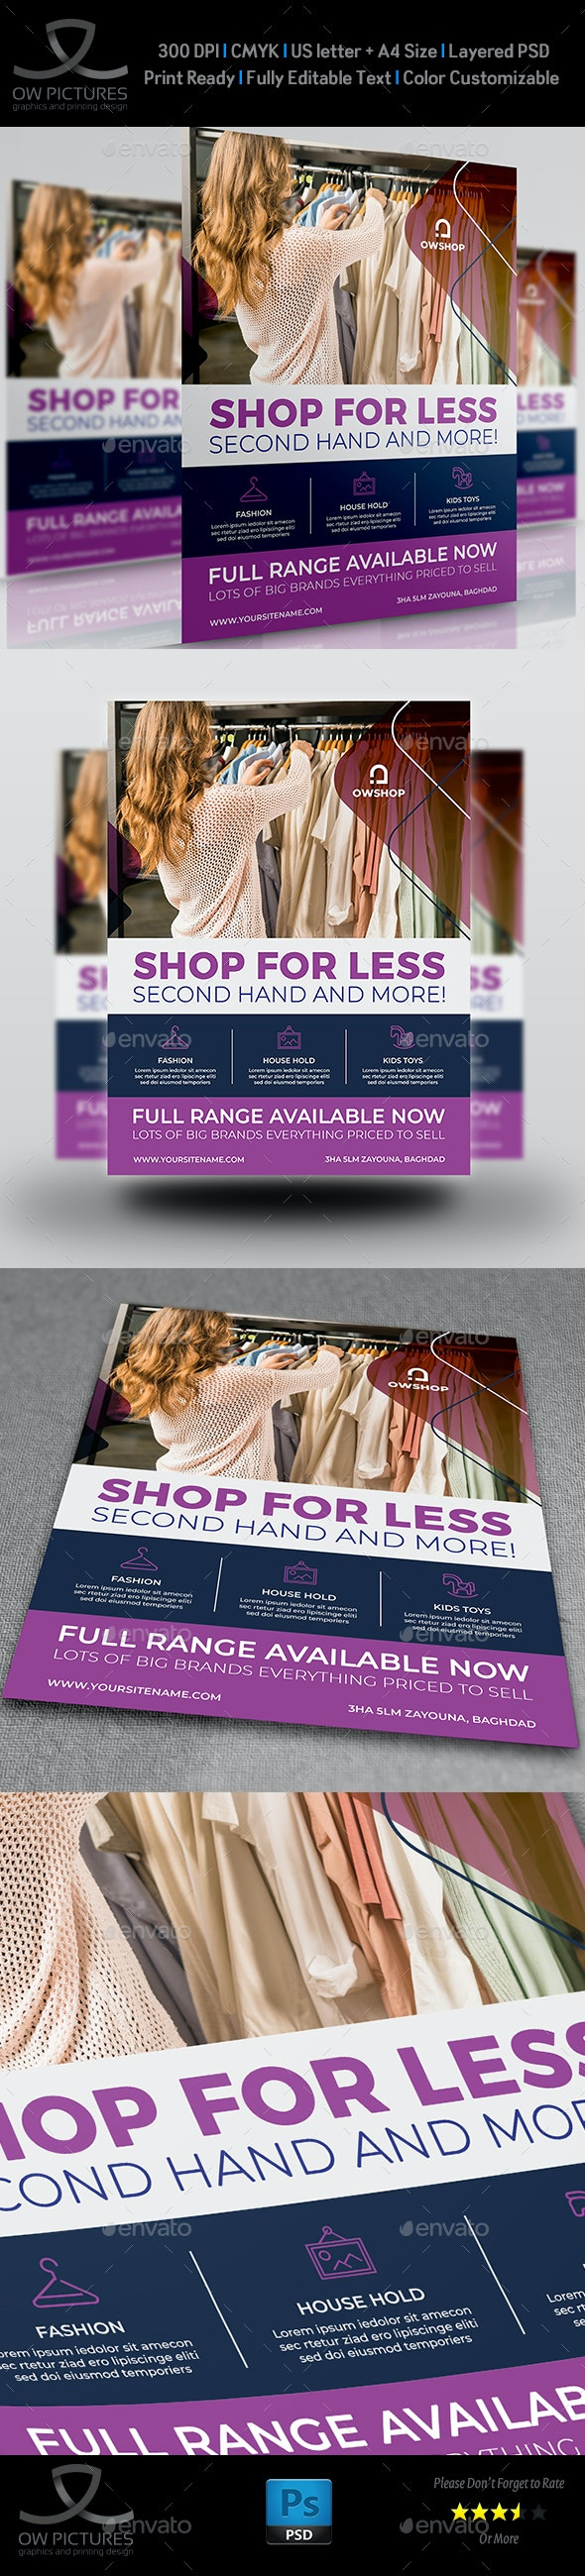 Second Hand Shop Flyer Template - Flyers Print Templates